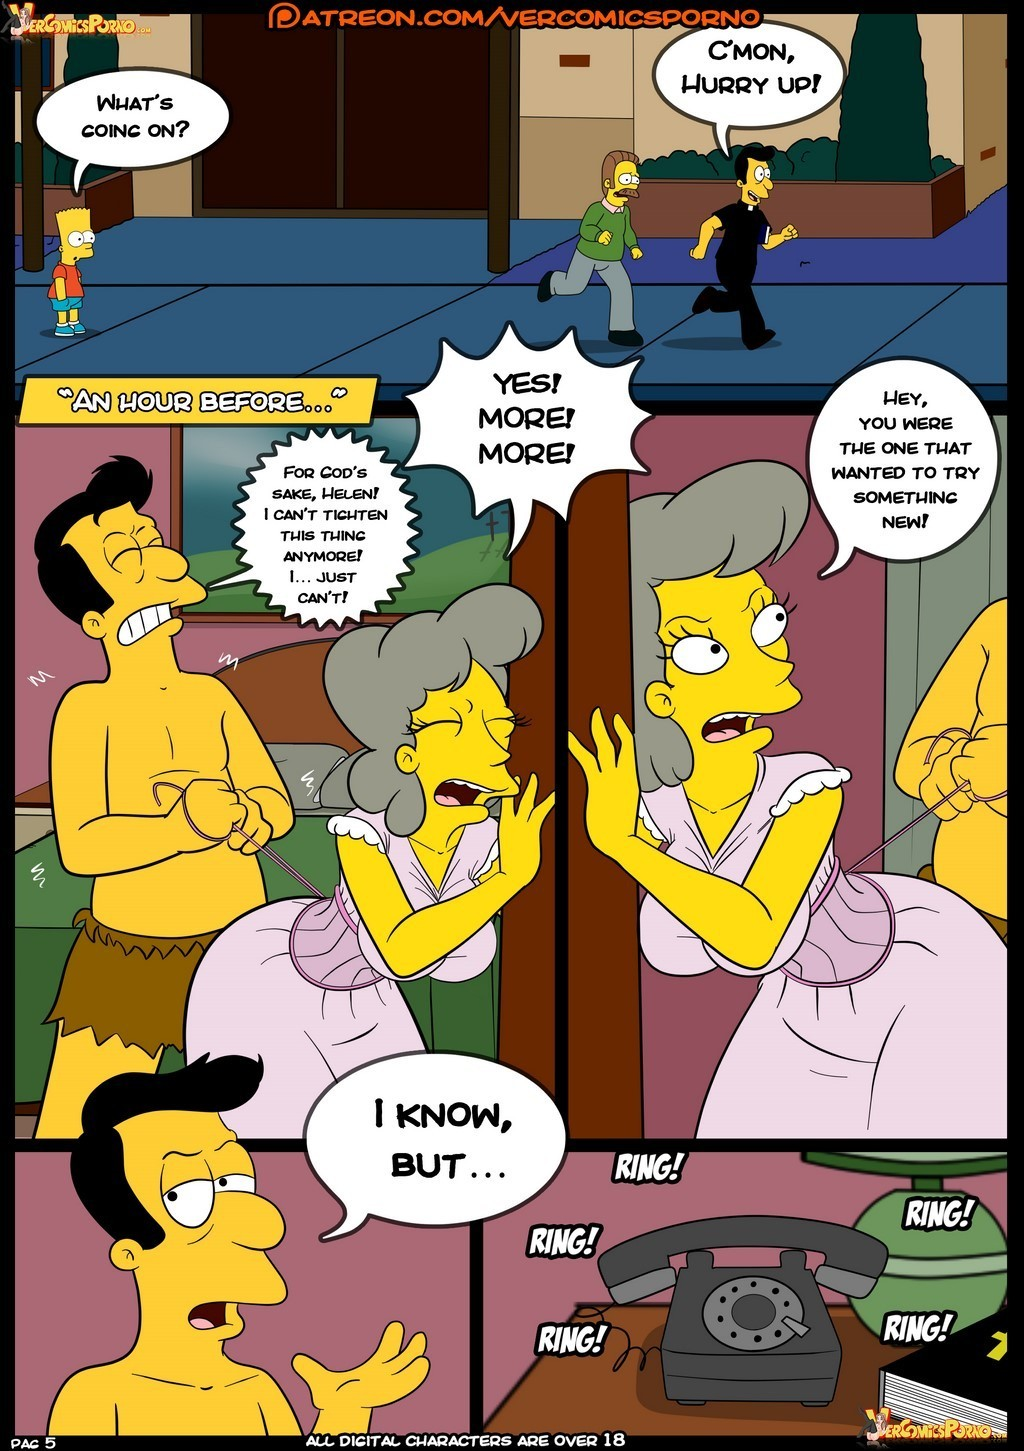 6 18 - The Simpsons. Part 8.